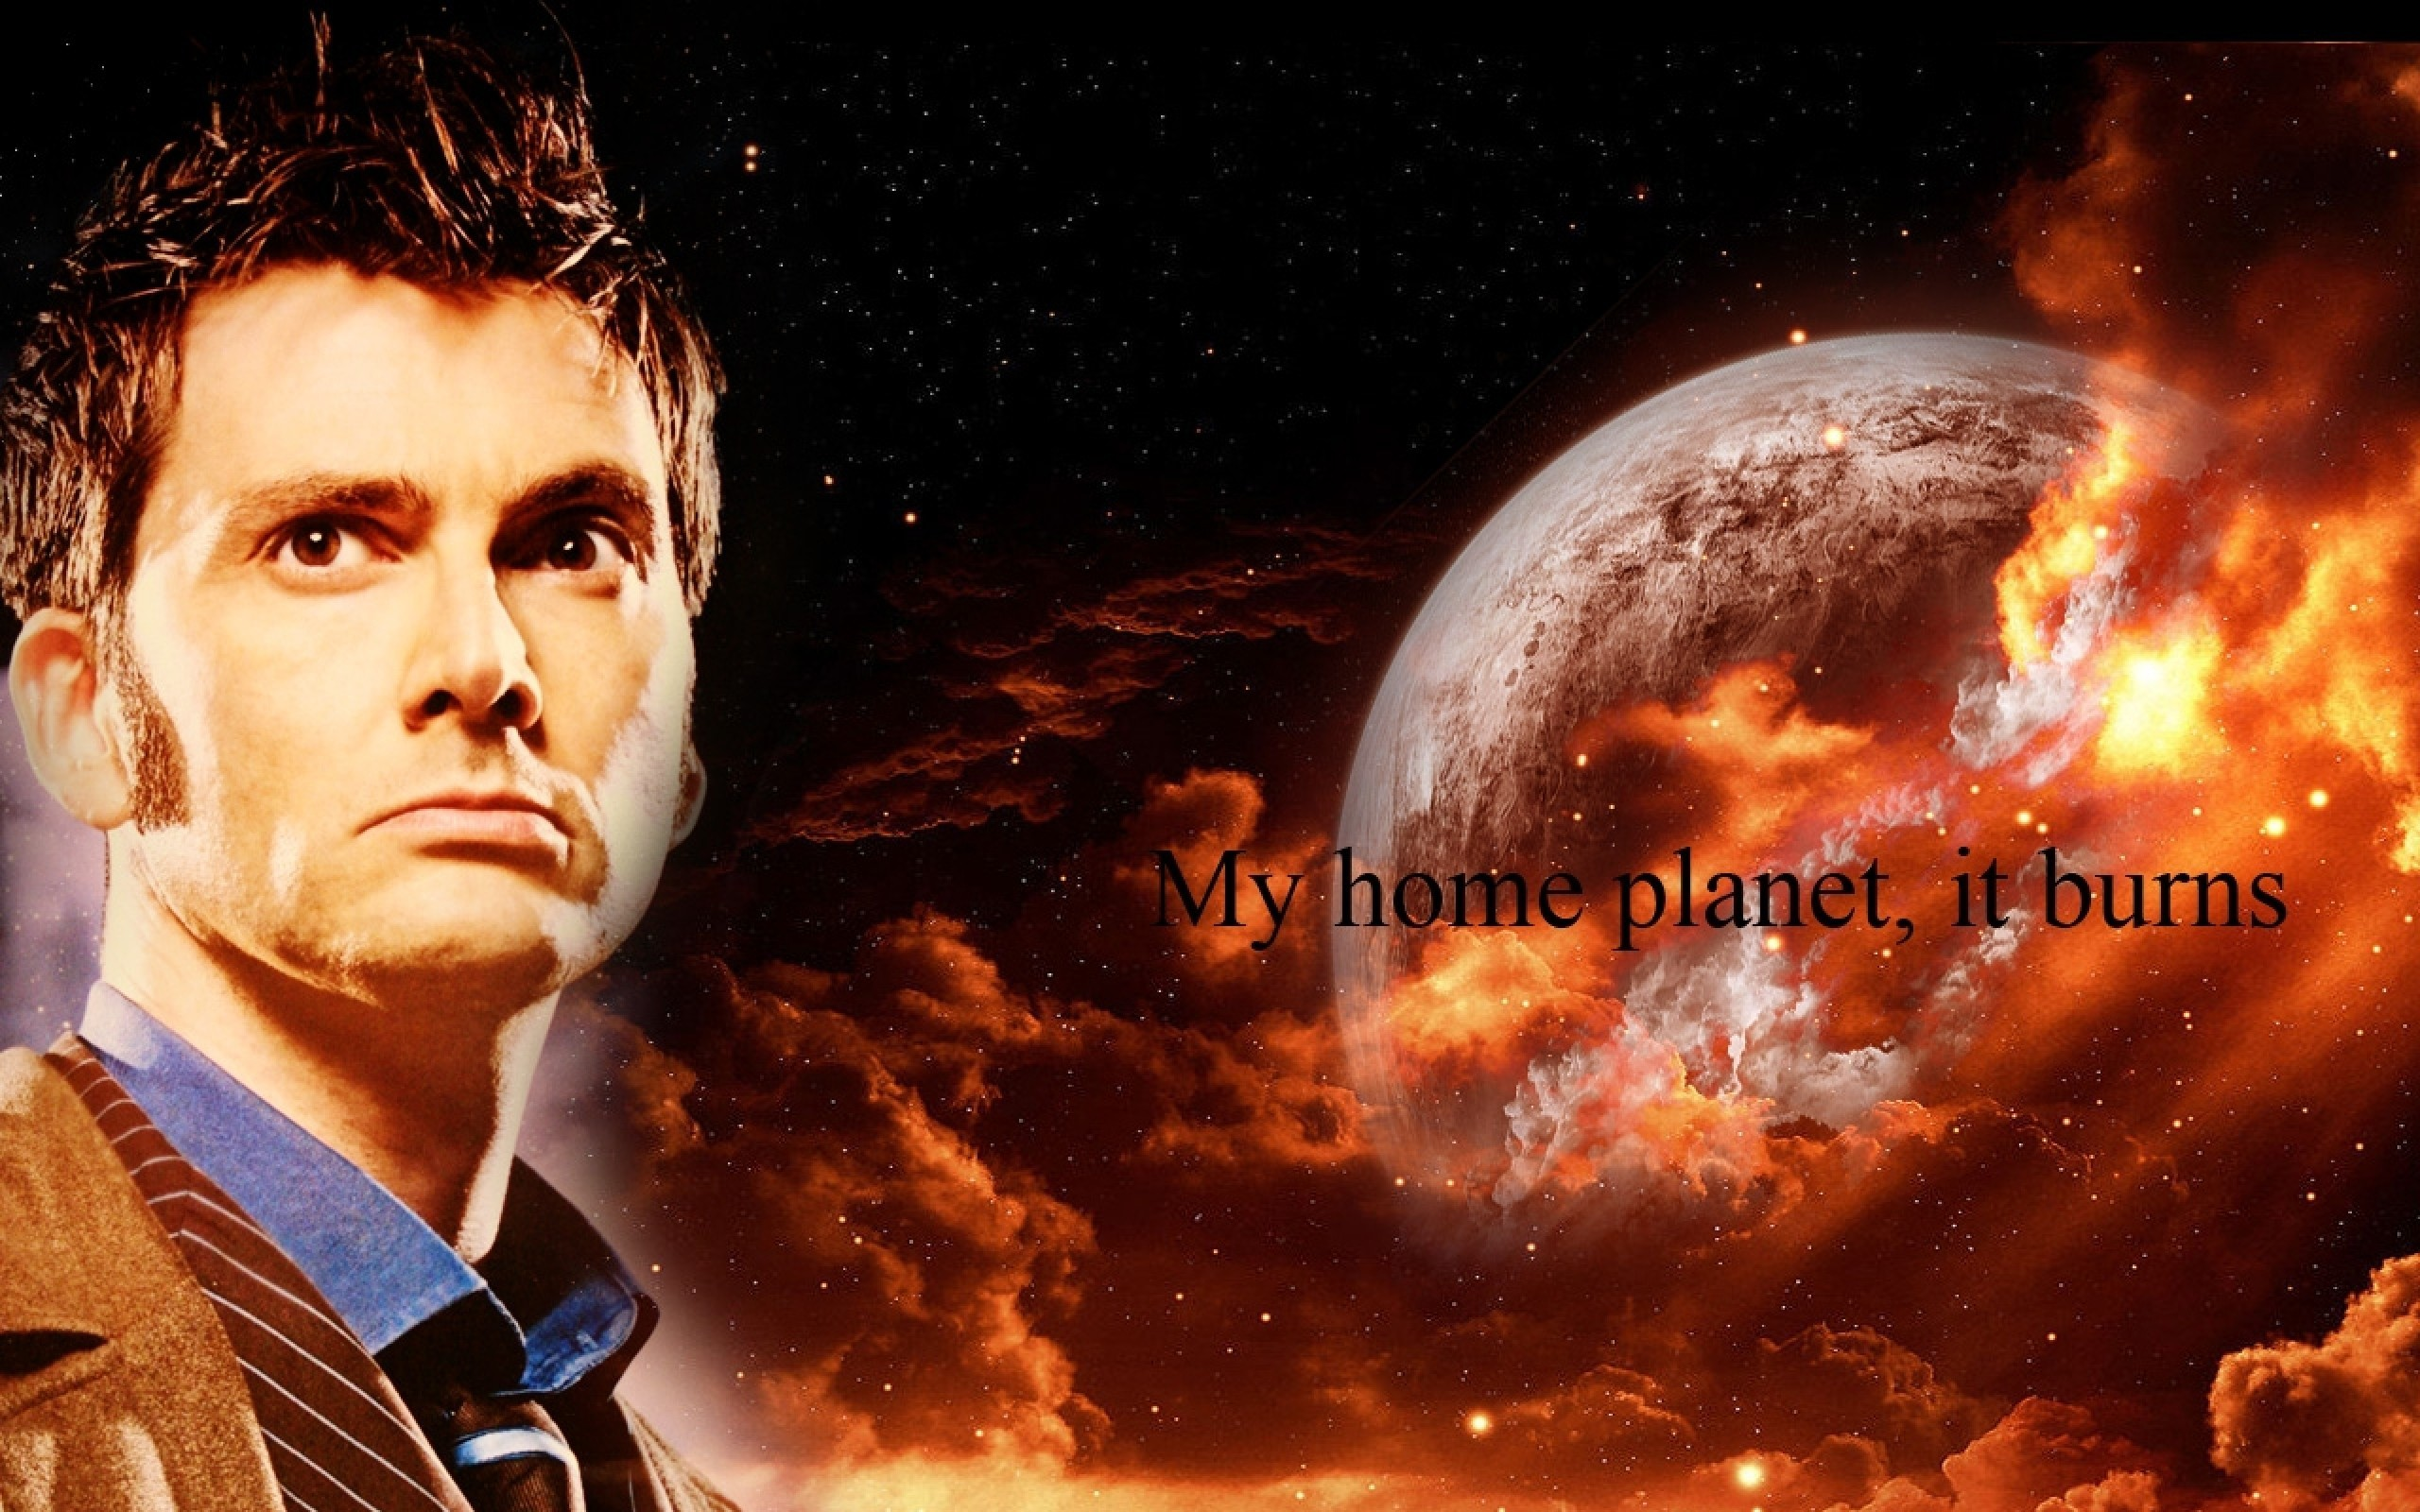 Doctor Who, The Doctor, TARDIS, David Tennant, Gallifrey, Tenth Doctor,  Planet, Quote Wallpapers HD / Desktop and Mobile Backgrounds